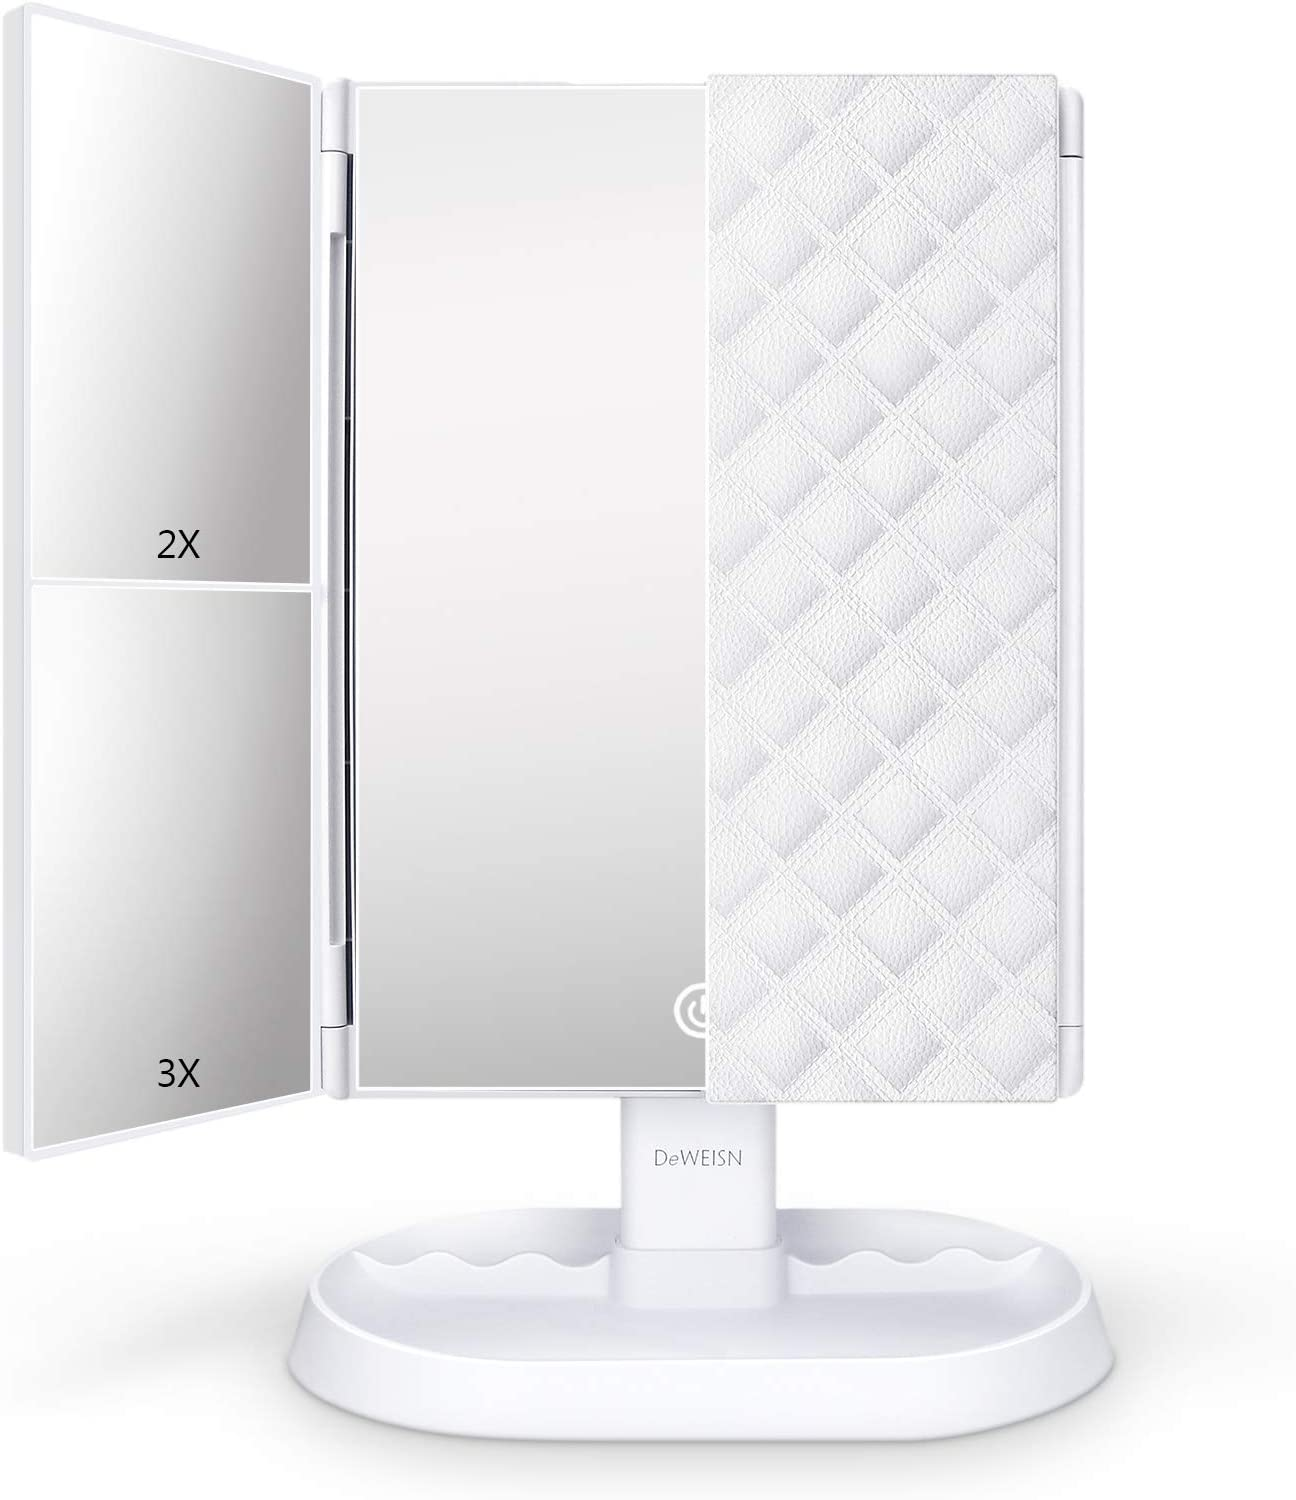 deweisn Trifold Lighted Vanity Makeup Mirror with 21 LEDs Lights,1x/2x/3x Magnification and Touch Screen Dimming,Two Power Supplies Makeup Mirror, Gift for Women